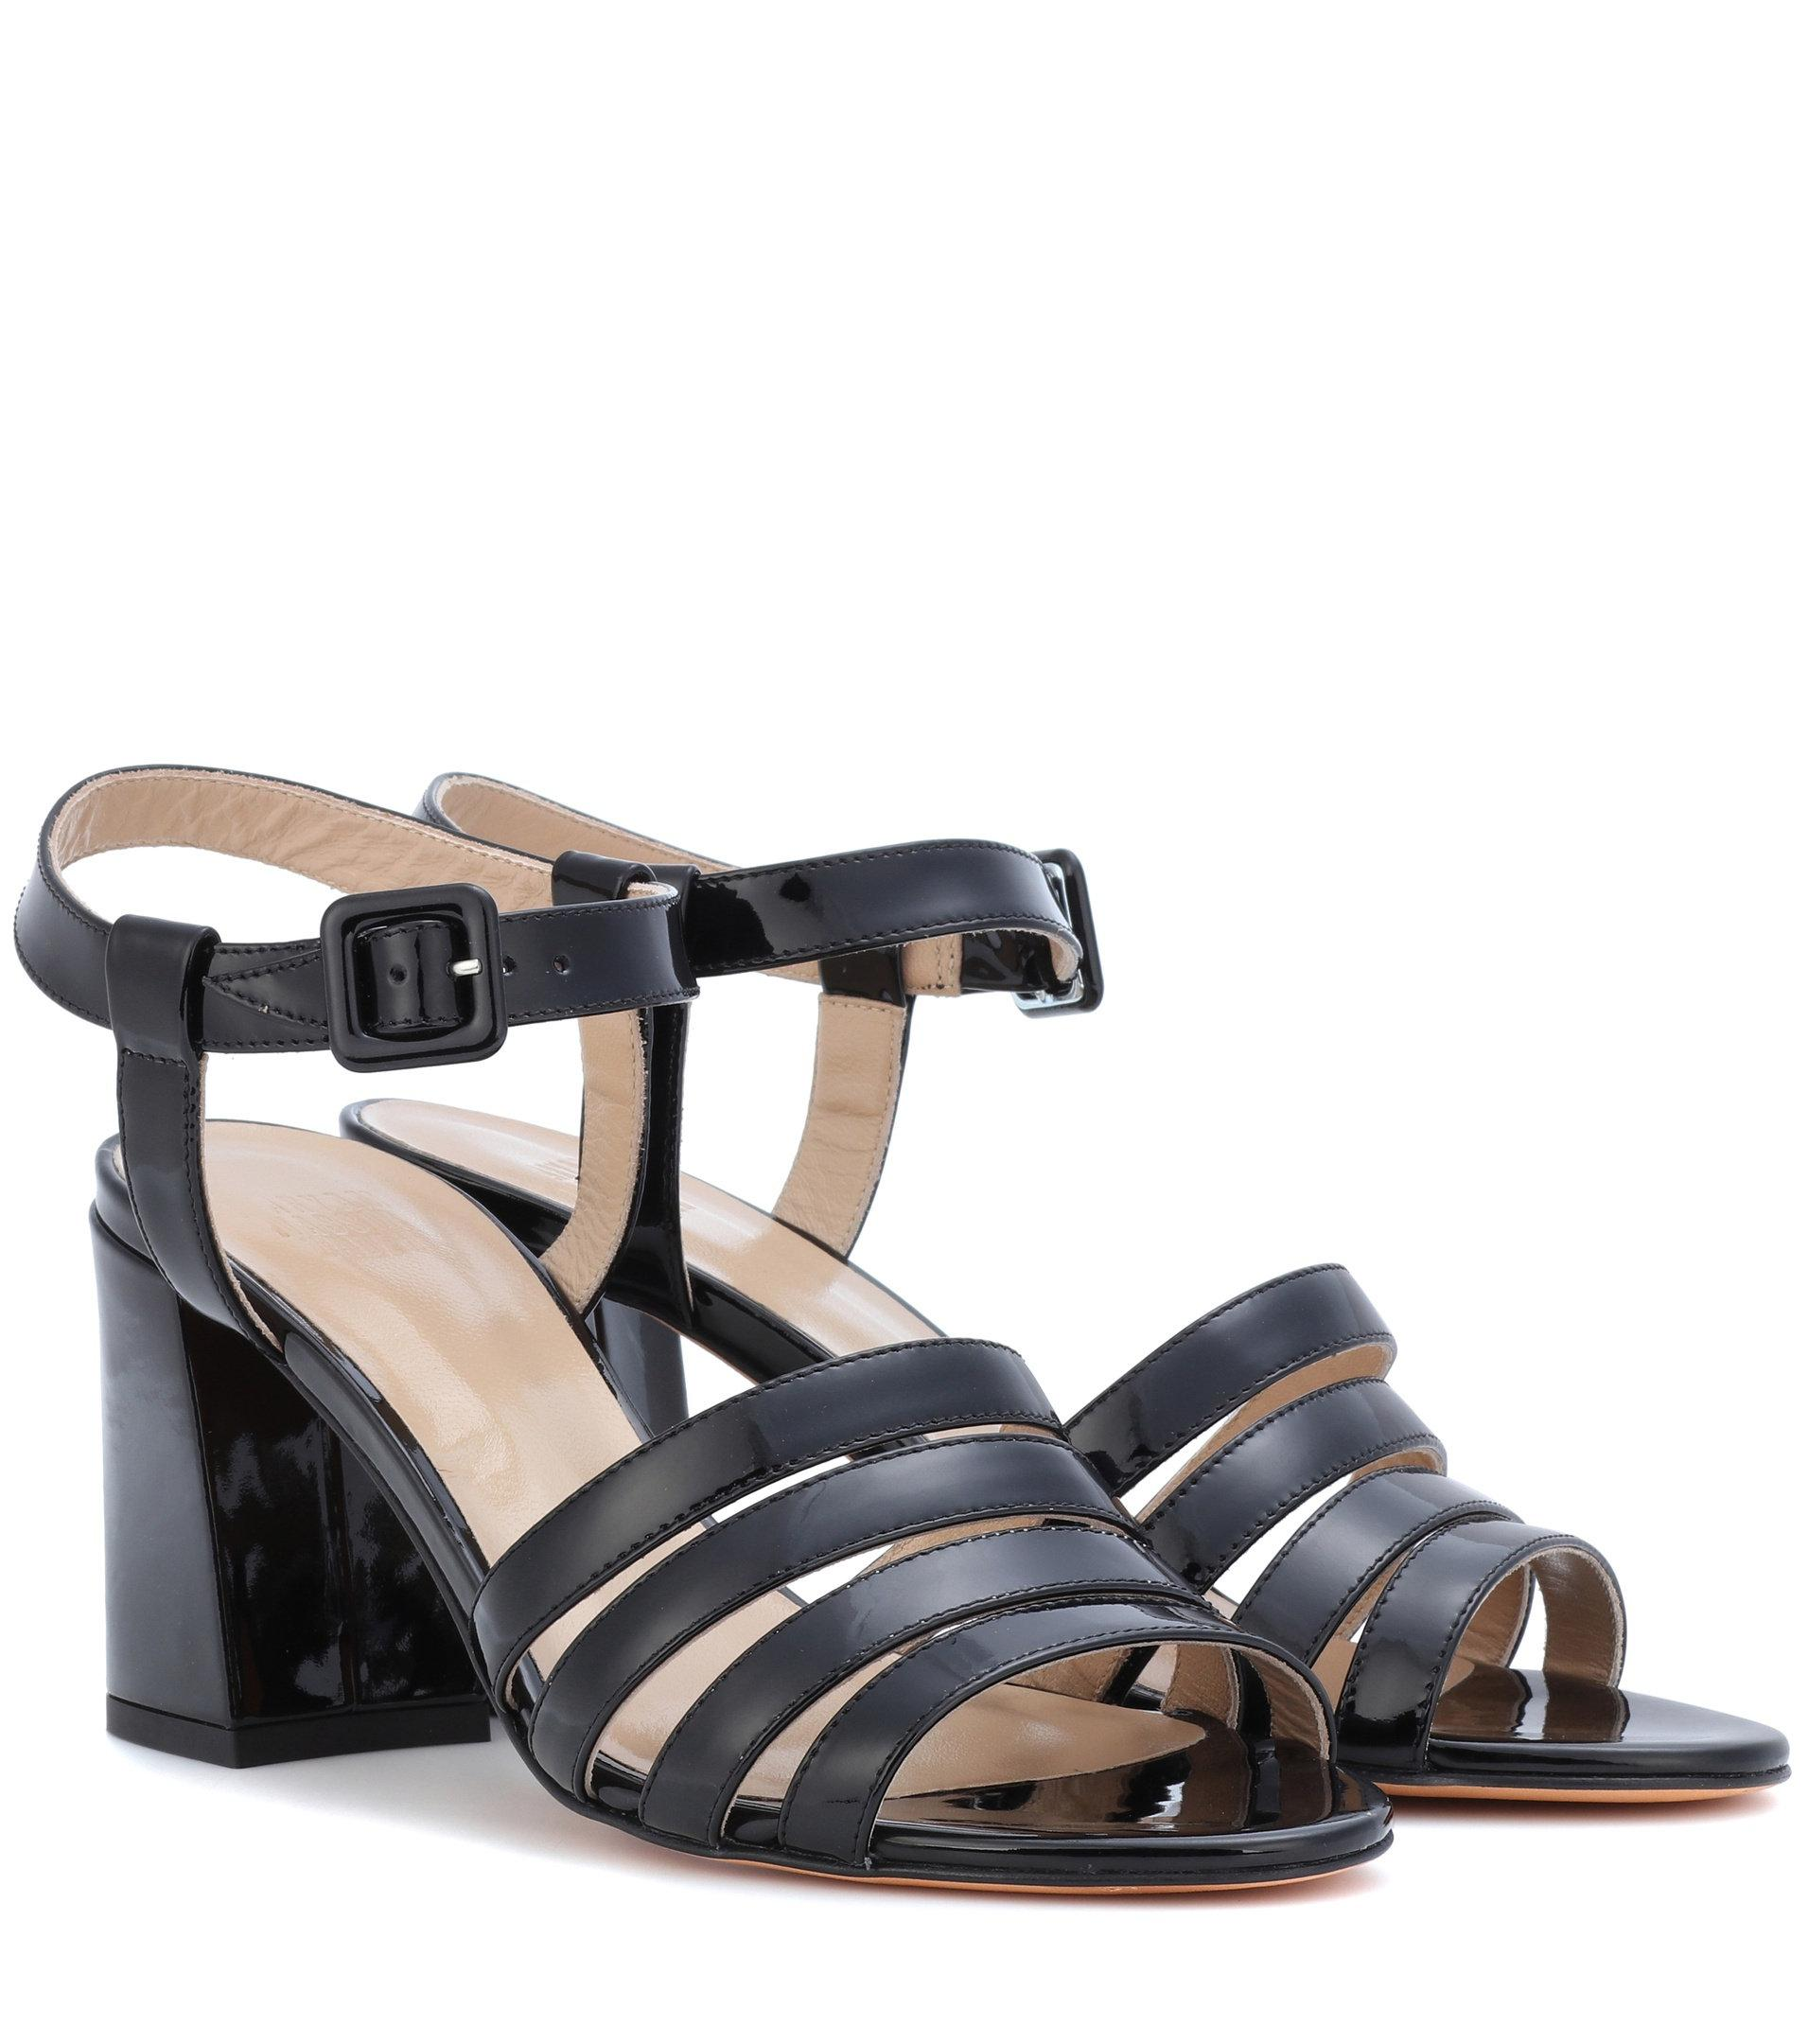 d3301187a19 Maryam Nassir Zadeh Palma High Patent Leather Sandals in Black - Lyst